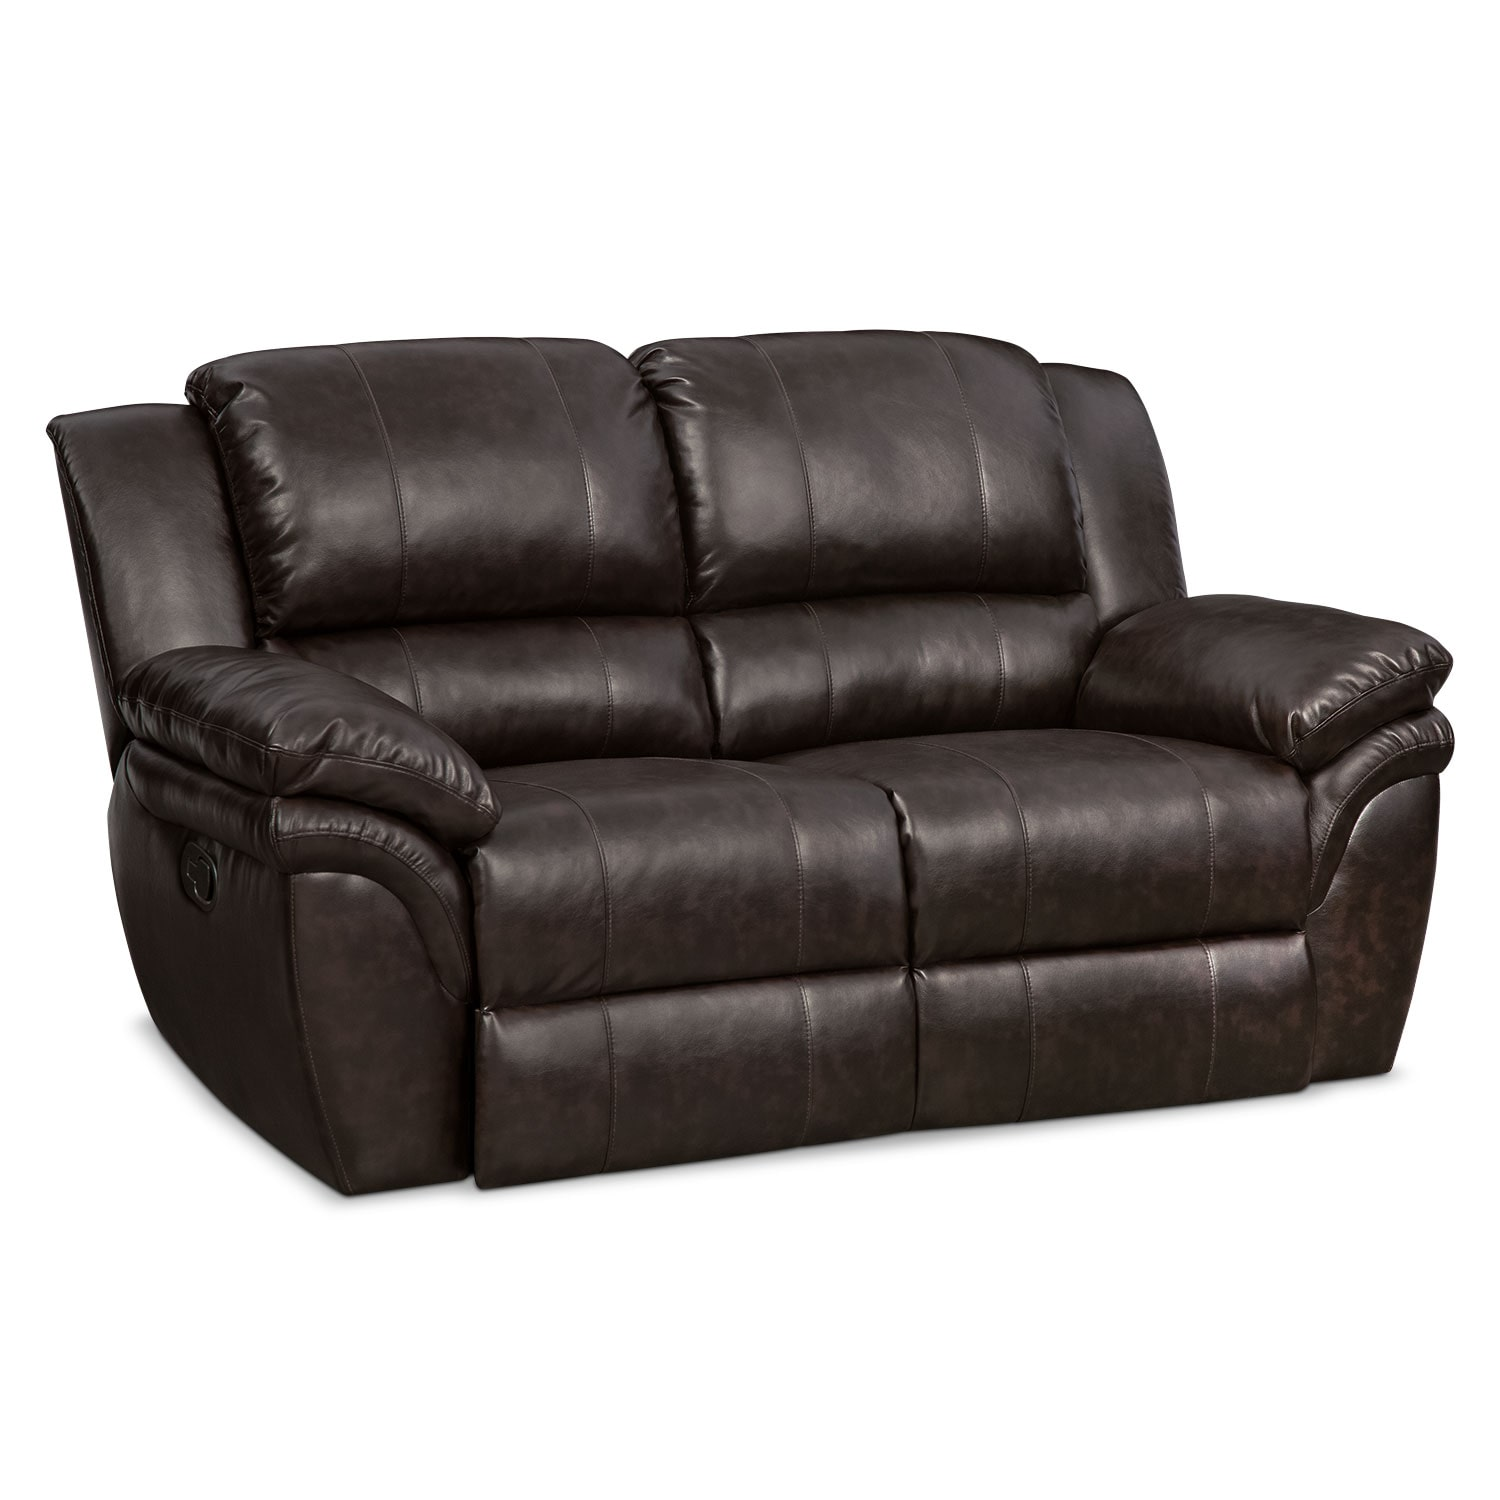 Living Room Furniture - Aldo Manual Reclining Loveseat - Brown